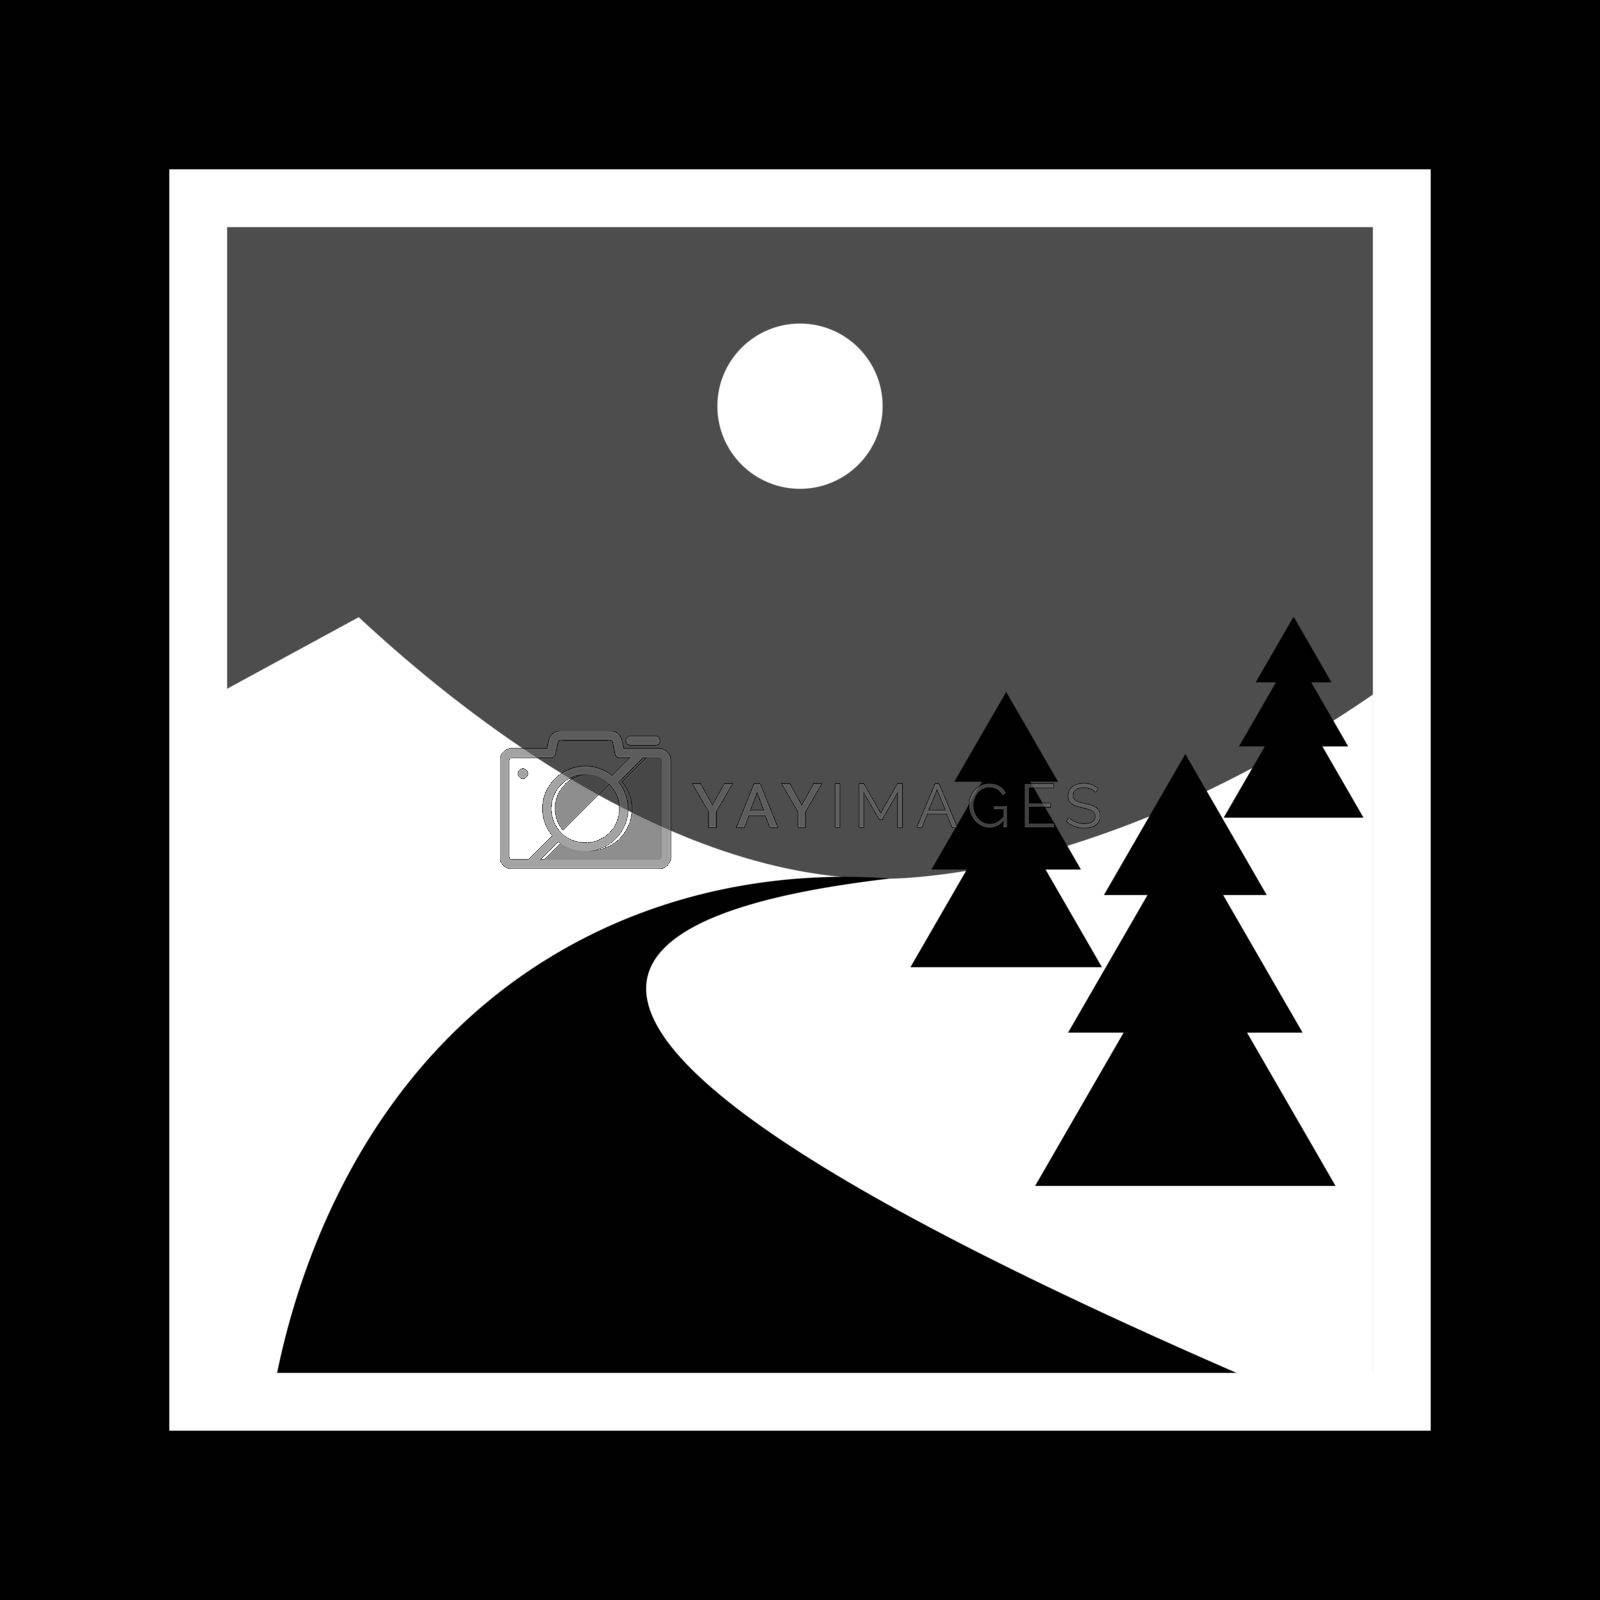 simple monochrome icon with snowy hills, spruce trees and road